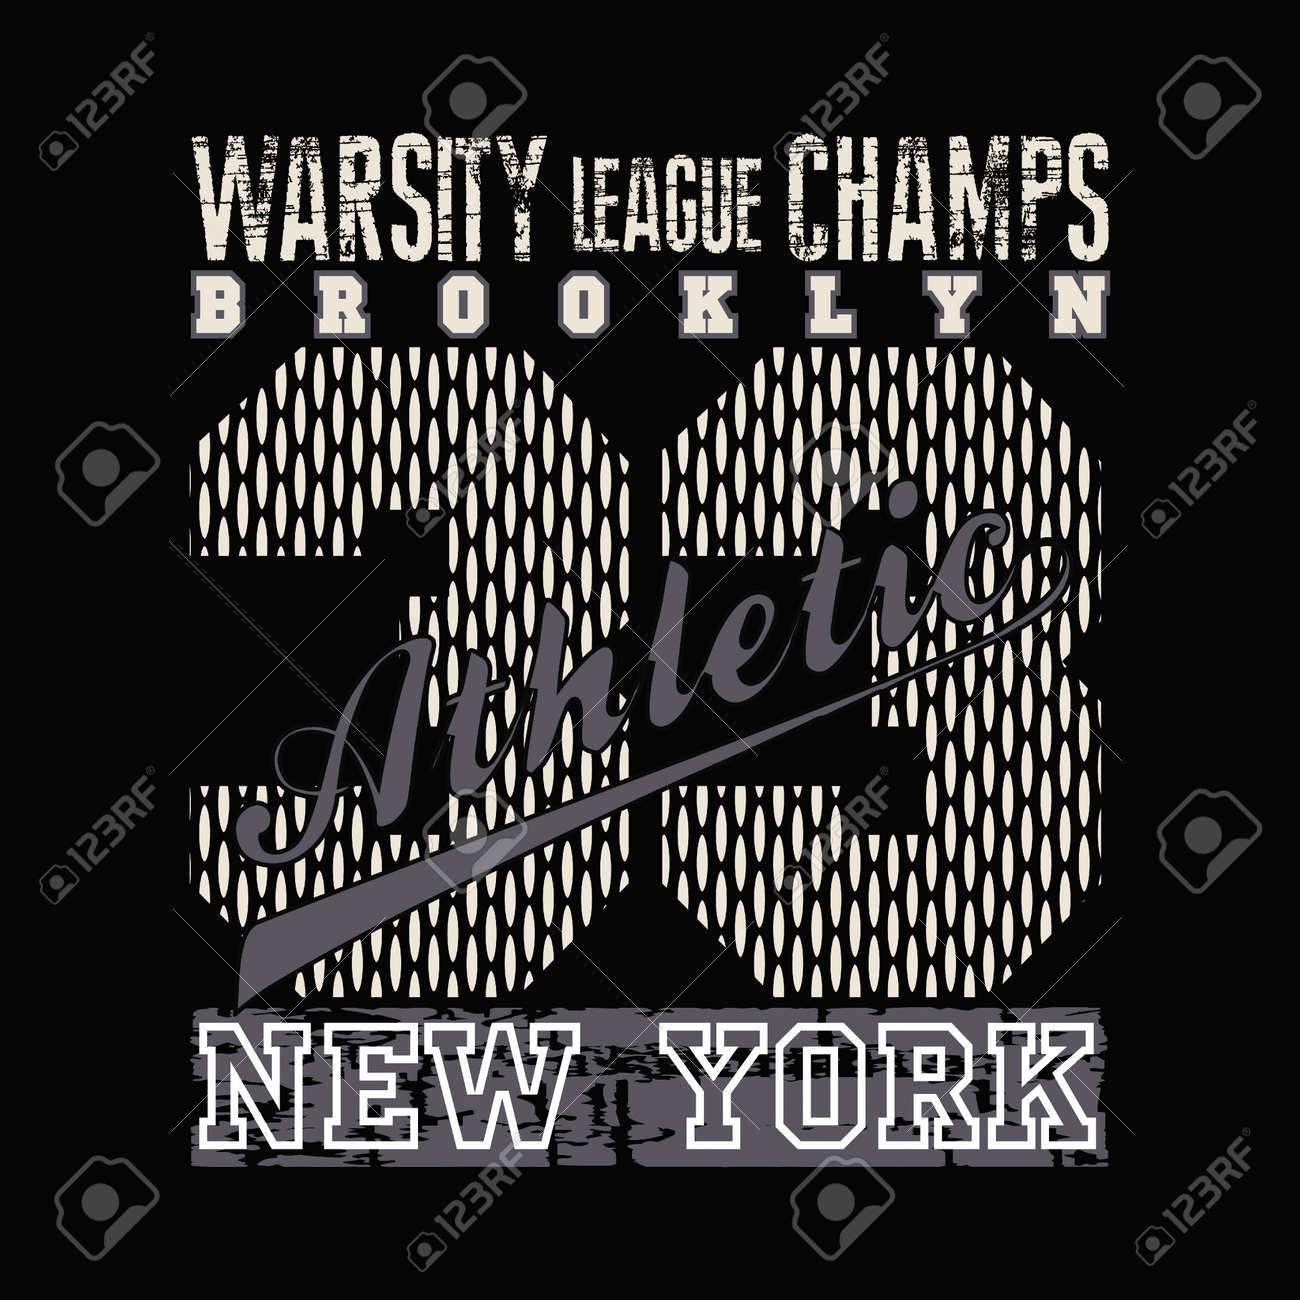 Design a t shirt nyc - New York Typography Athletic Design Graphic T Shirt Printing Man Nyc